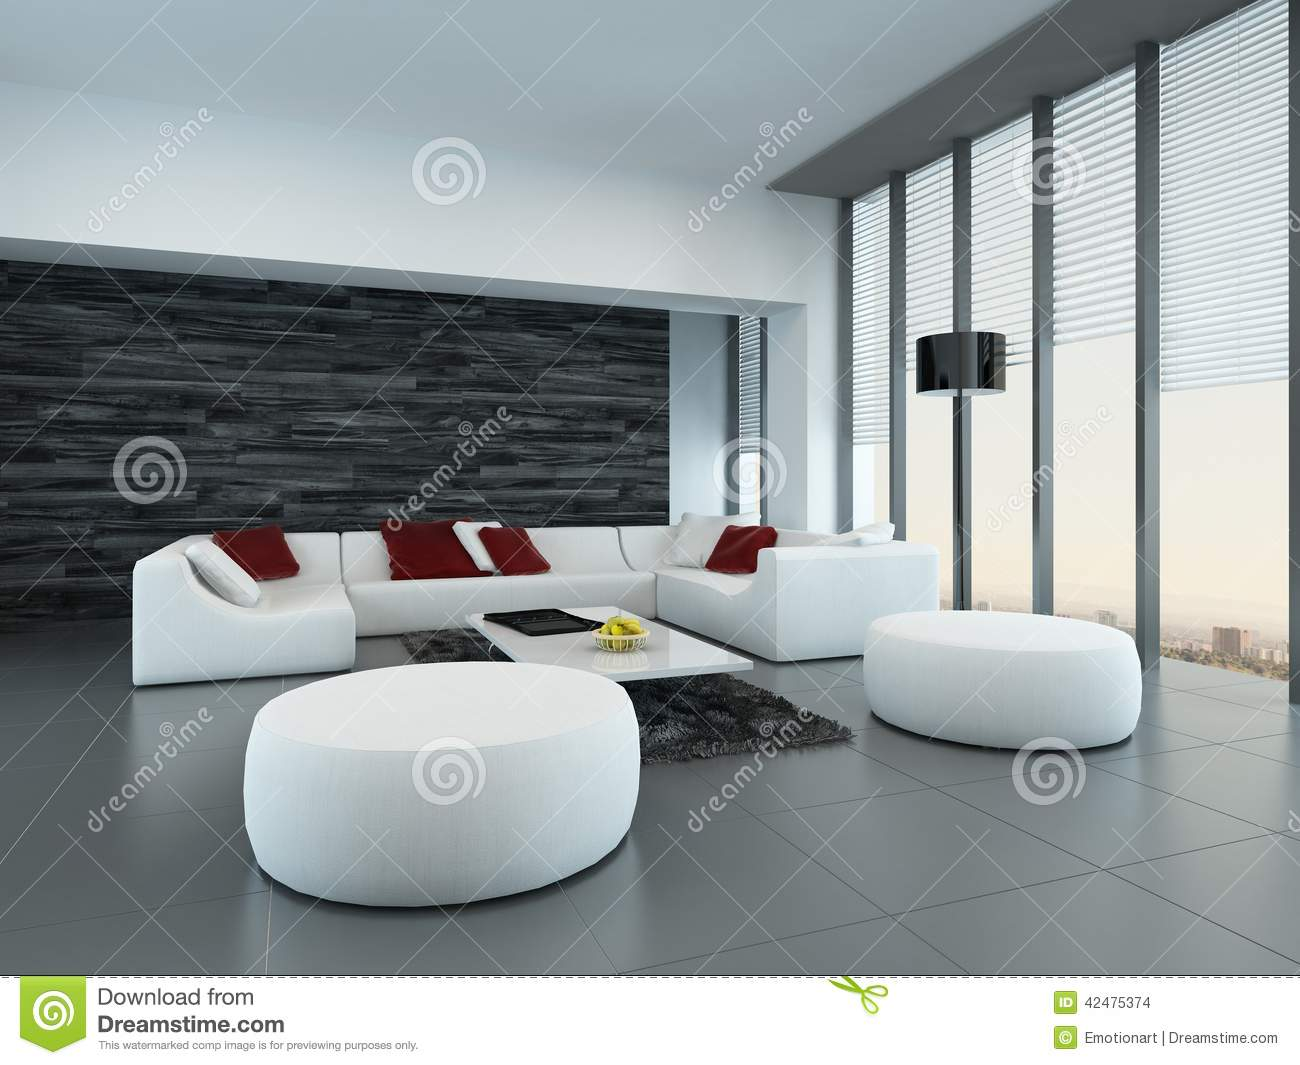 Int rieur d 39 un salon gris et blanc moderne illustration stock image 42475374 for Interieur salon moderne